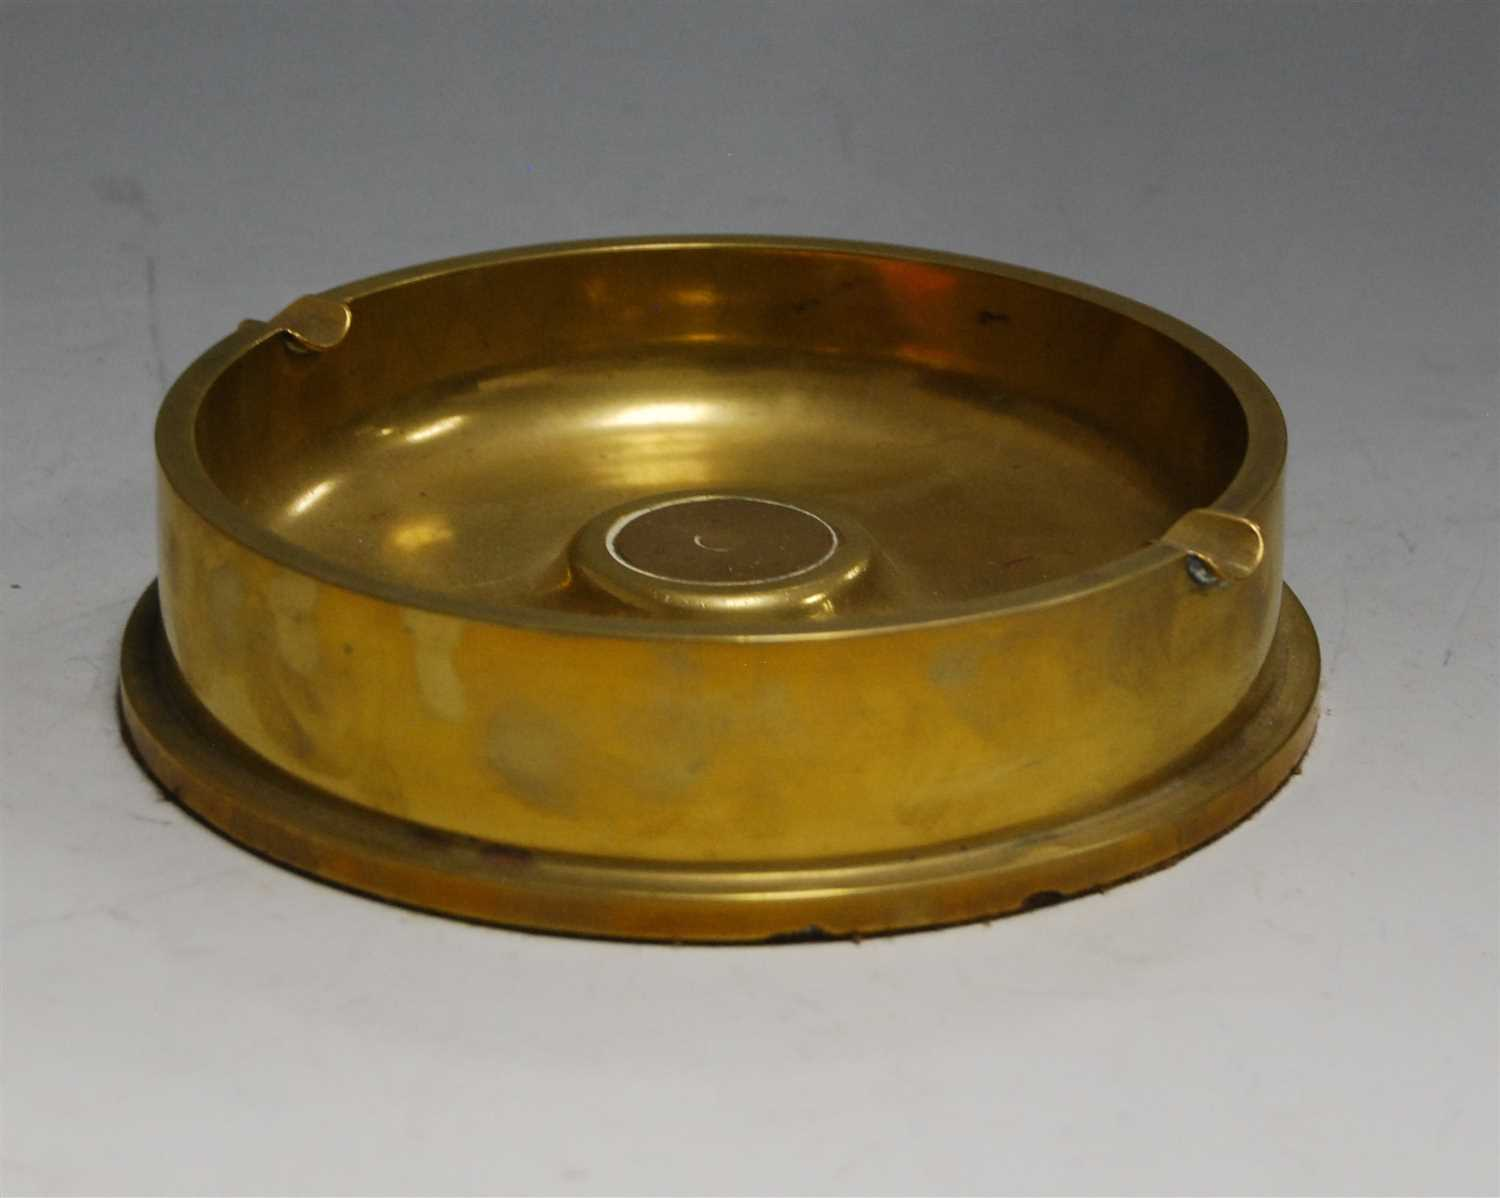 Lot 7-A large brass trench art style ashtray, dia. 17cm